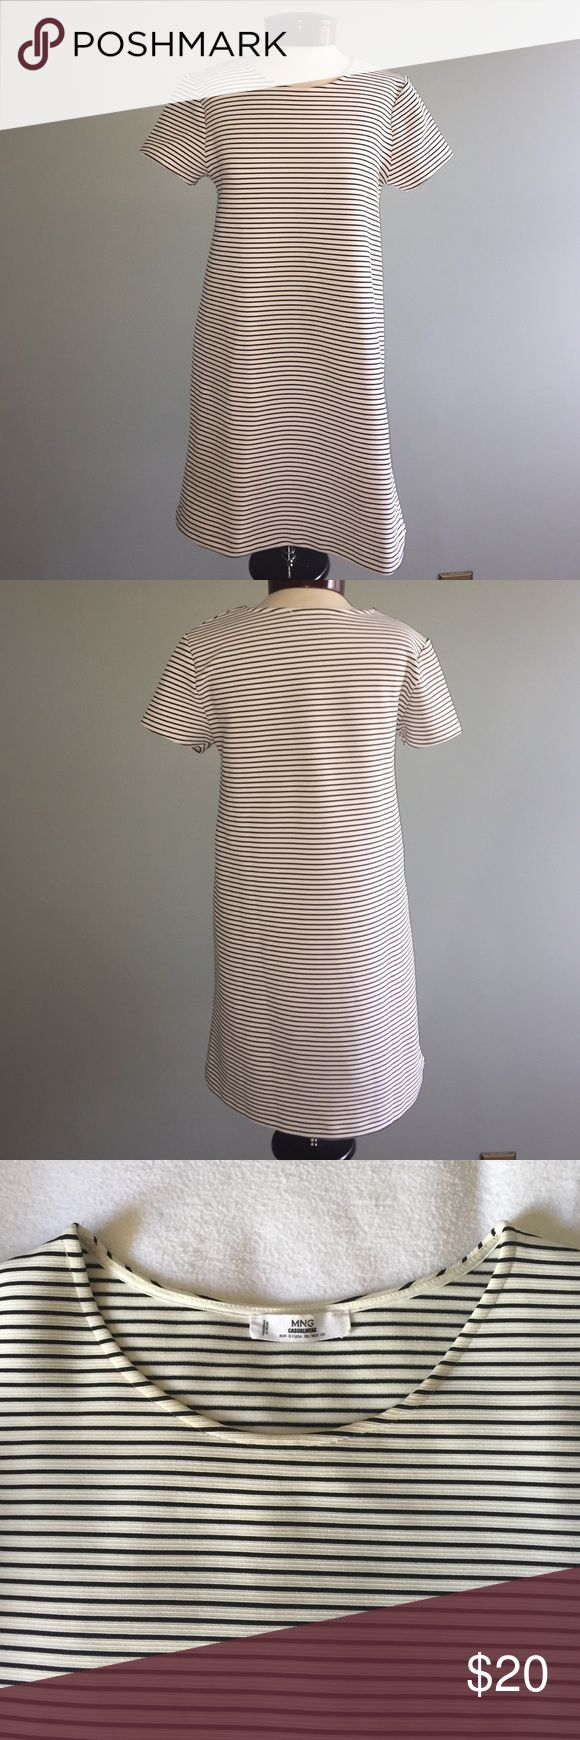 Mango Stripe Mini T-Shirt Dress Striped black and white mini dress by Mango. T-shirt style with short sleeves and slight bell shape. Great everyday dress with sneakers and a jean jacket! EUC! 💕 Mango Dresses Mini